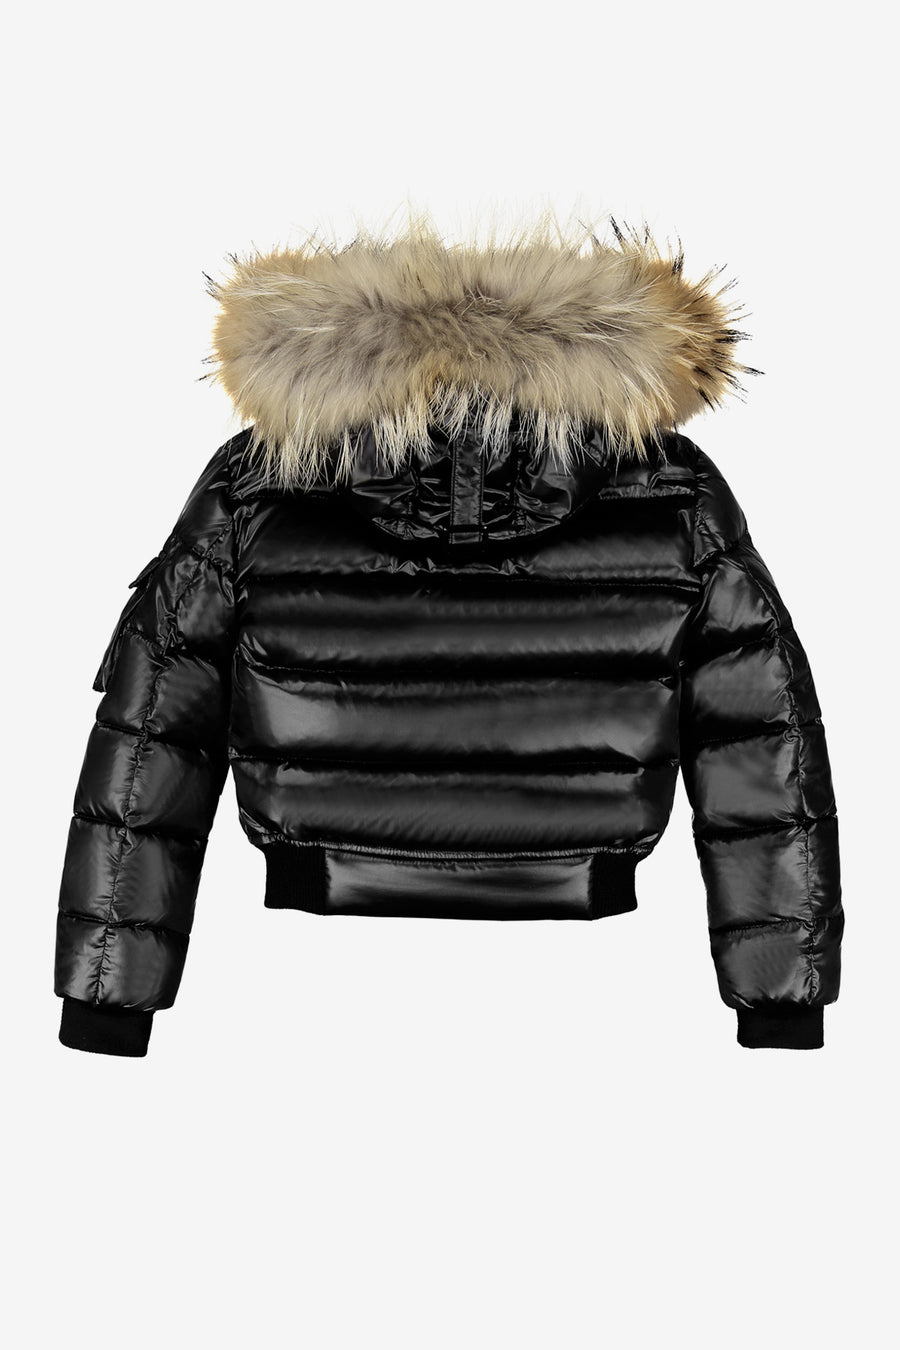 Outerwear Jackets And Coats For Girls Boys And Baby At